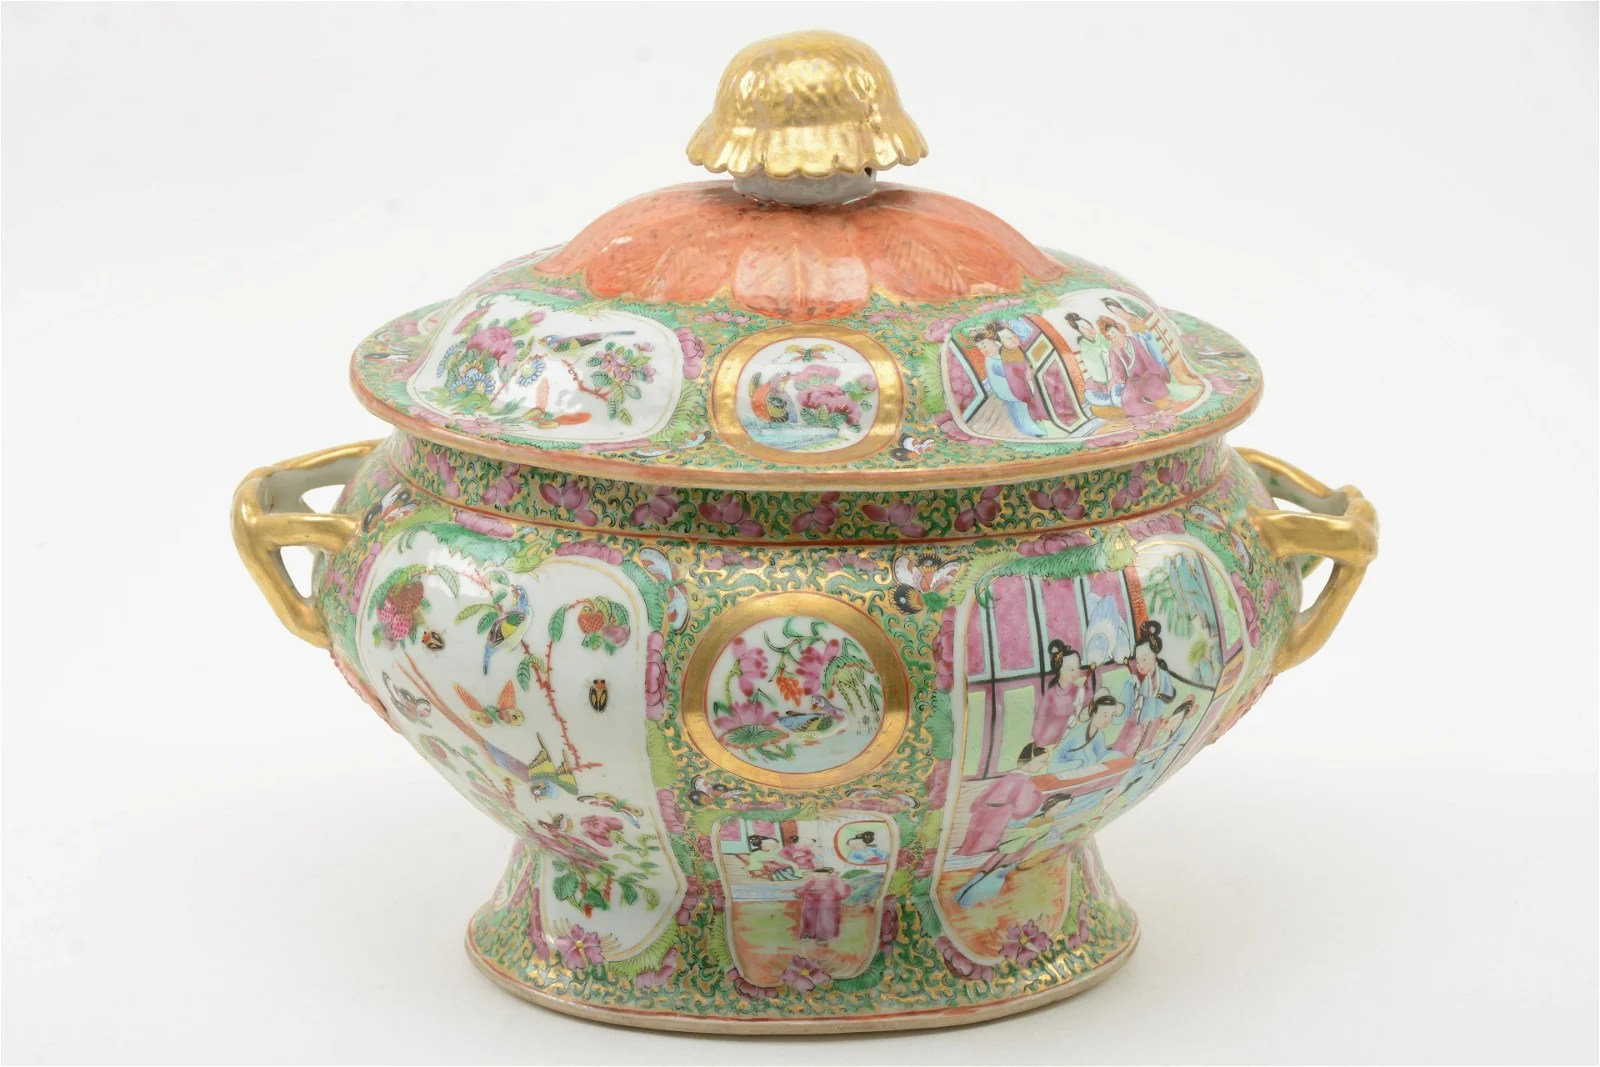 19th Century Chinese Famille Rose Porcelain Tureen